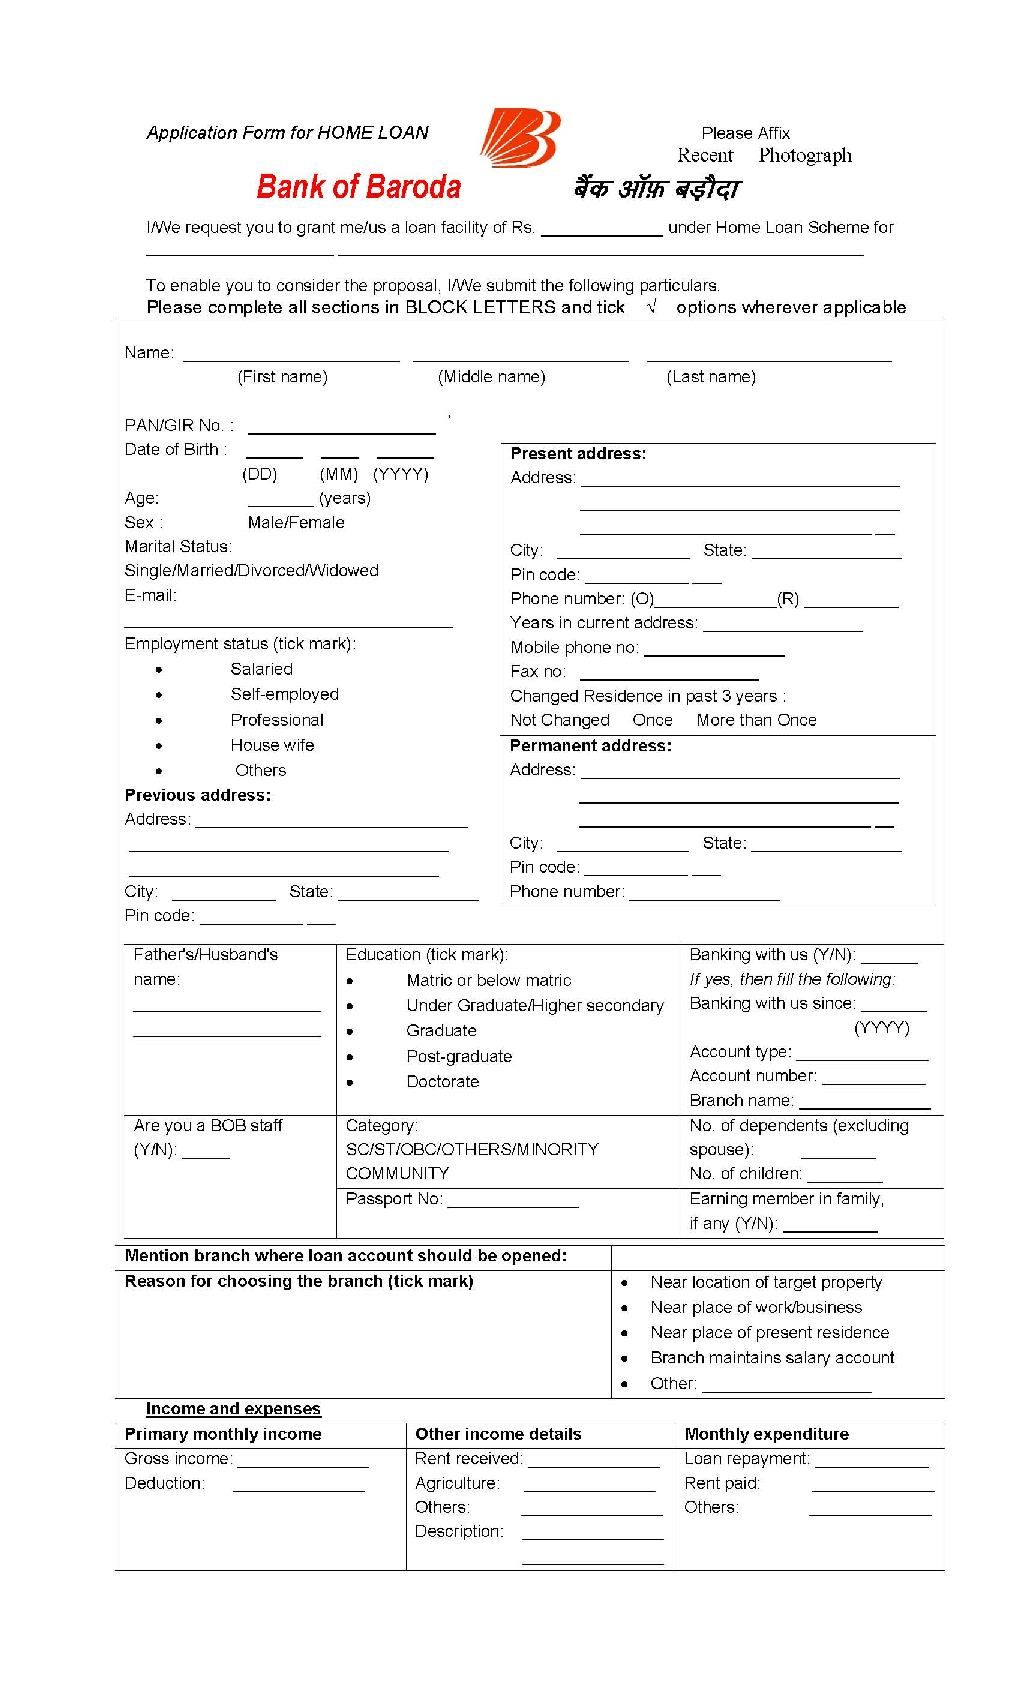 Bank-of-Baroda-home-loan-application-form-1 Salary Loan Application Form on federal student, blank business, print out eminent finance, free personal, free print, uniform residential, sample small, bank america car,